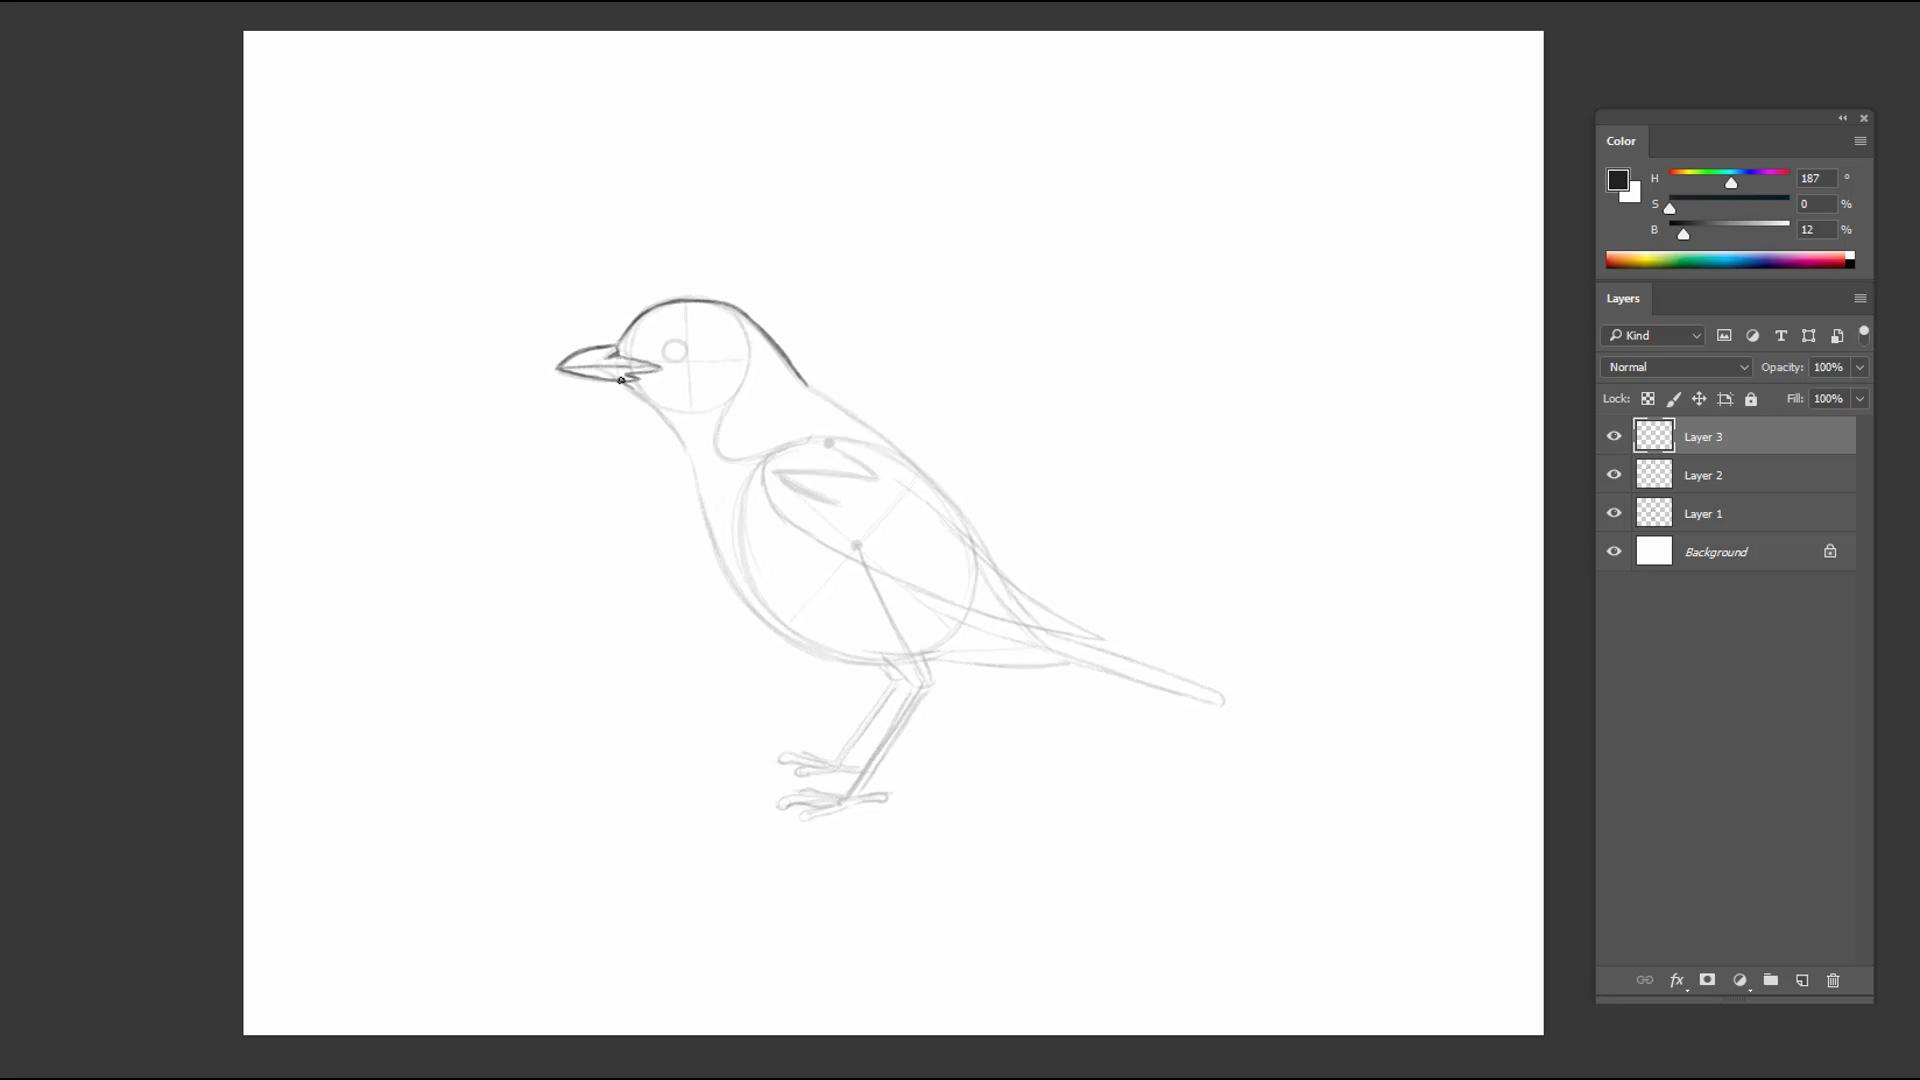 Rough pencil sketch of a bird